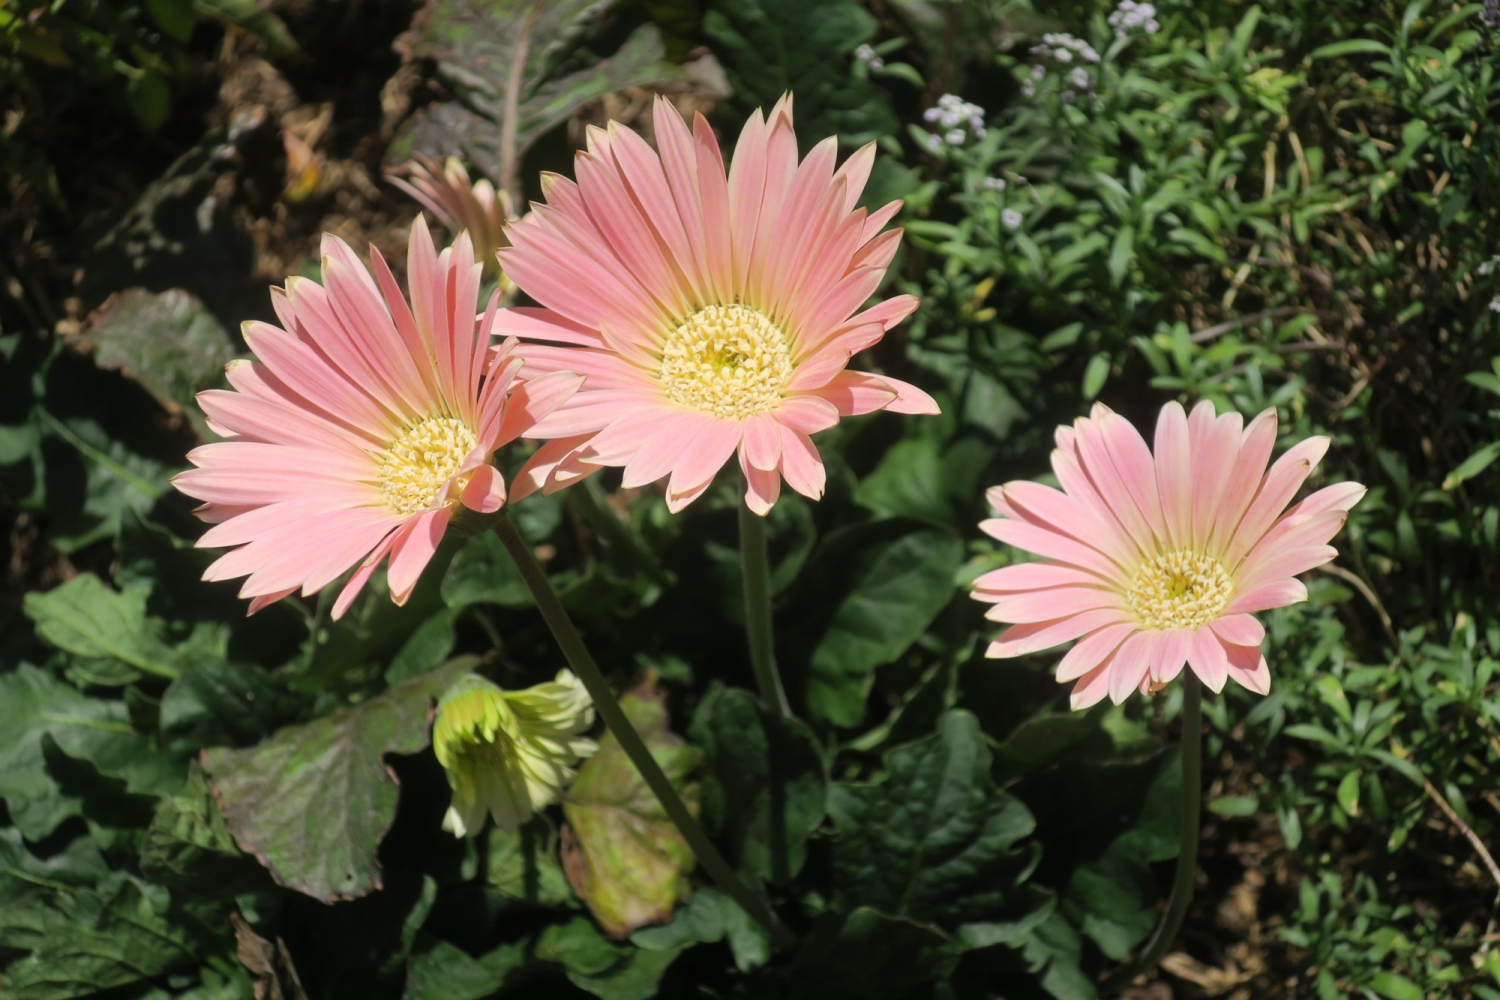 Pink multi-petalled flowers with light yellow centres.